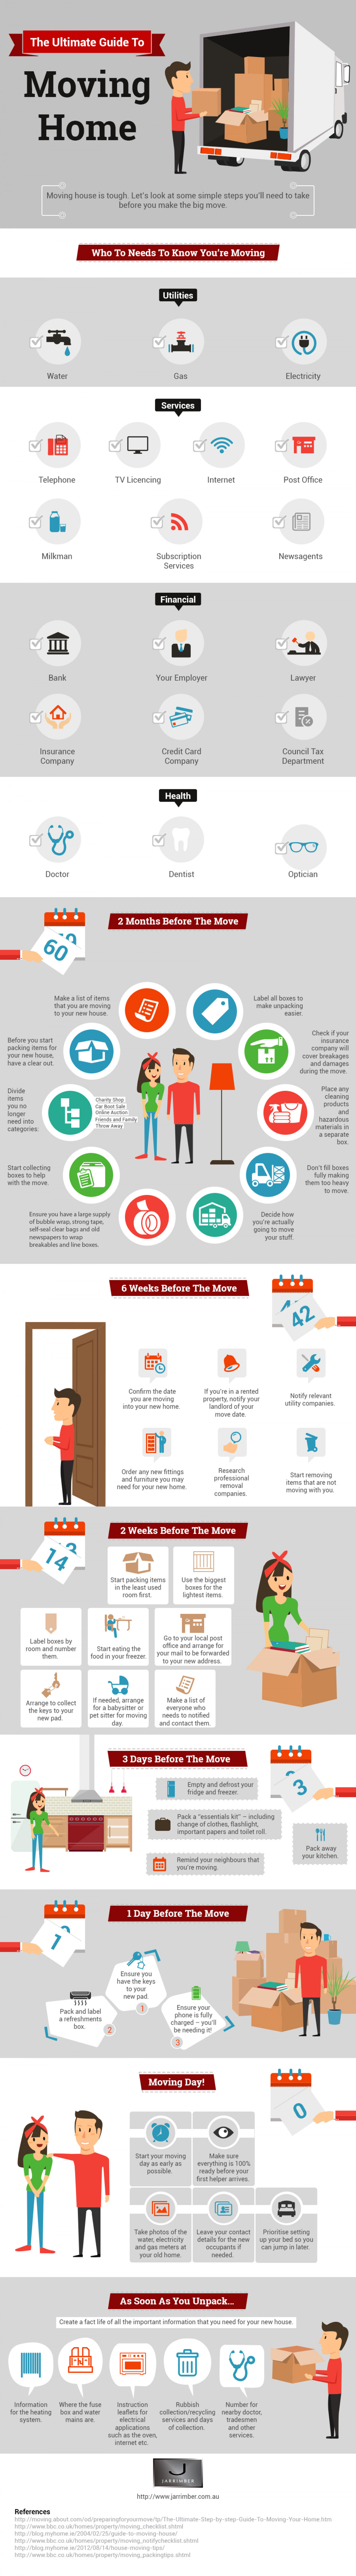 The Ultimate Guide To Moving Home [Infographic] Infographic